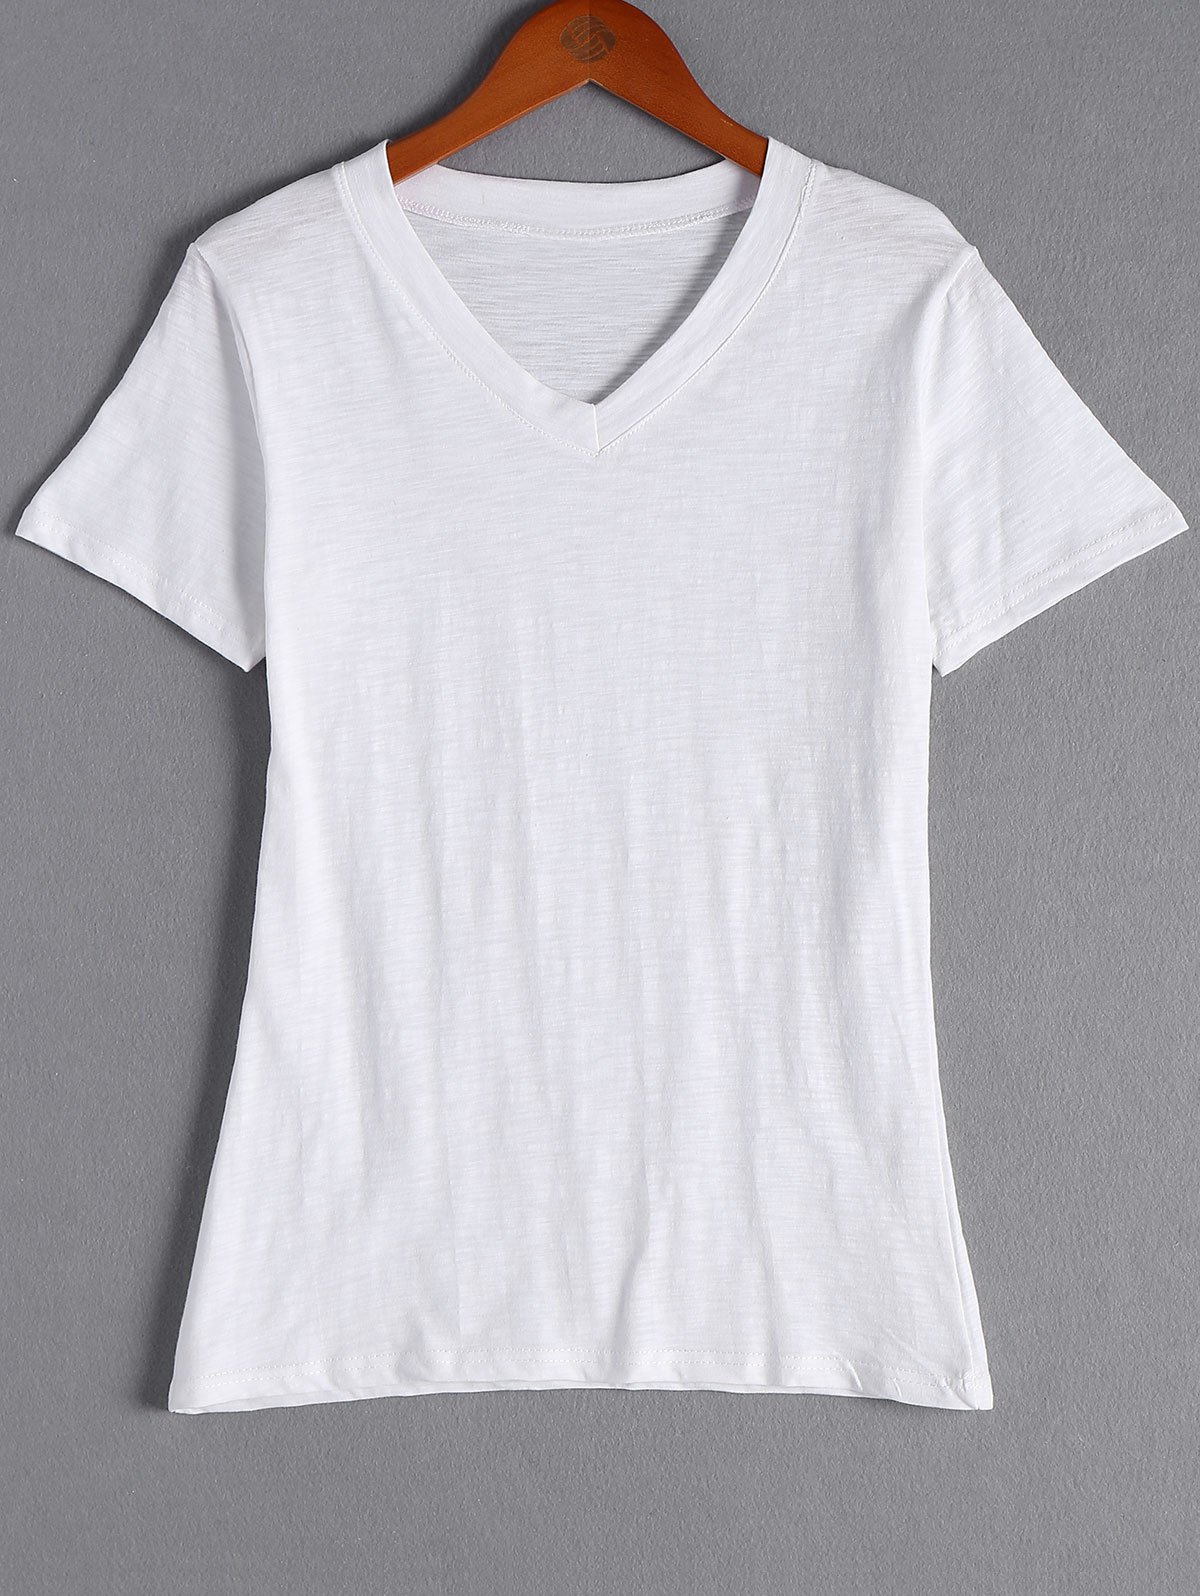 Simple Design Women's Solid Color V-Neck Short Sleeves T-Shirt